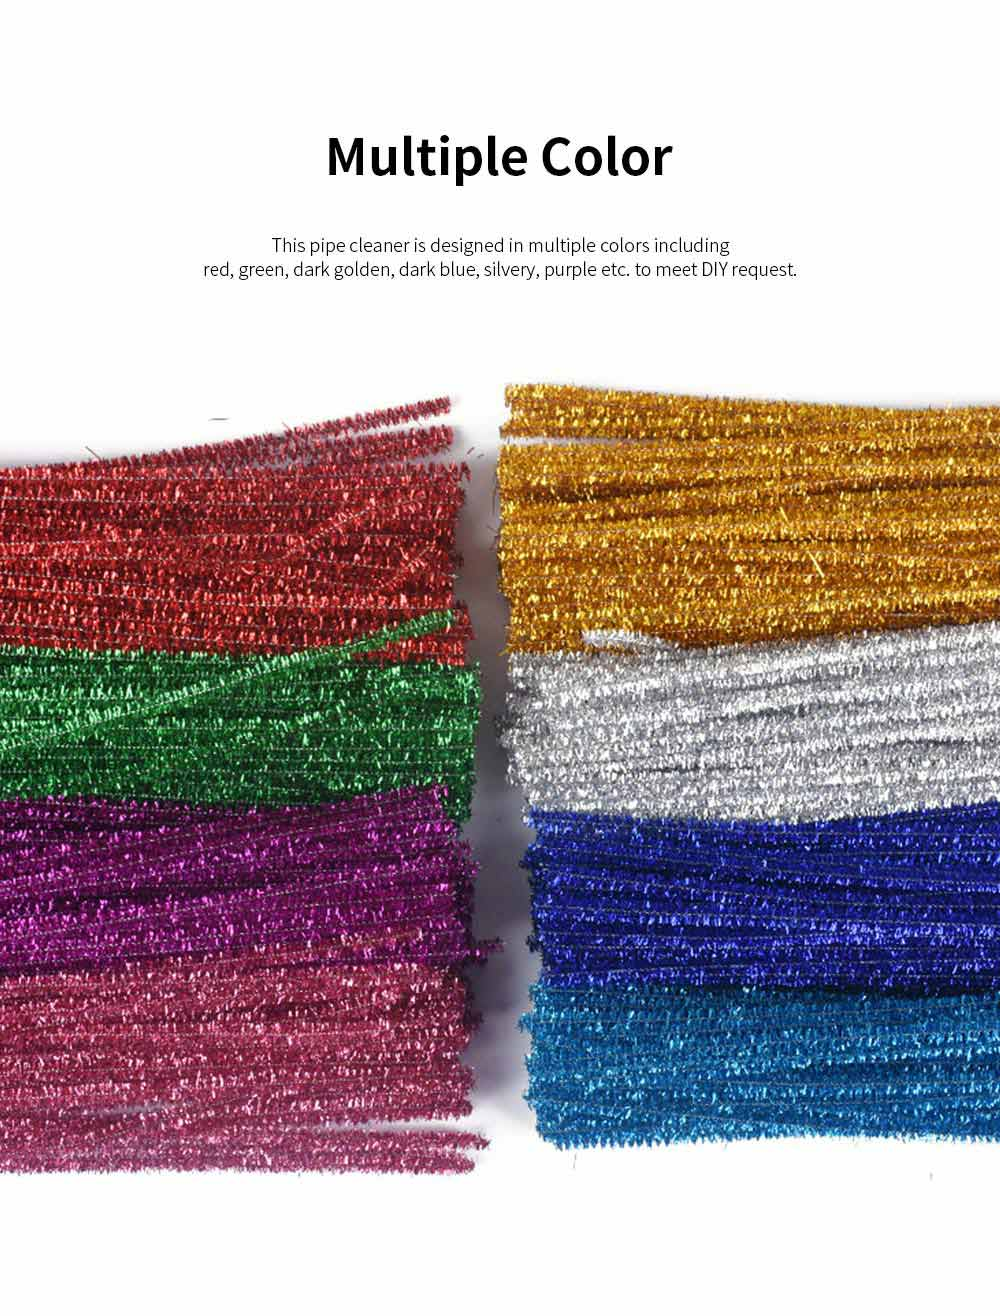 100PCS Colorful Pipe Stick for Kindergarten Handmade Material Mixed Colorful Pipe Twist DIY Cyclic Wave Crooked Stick 4